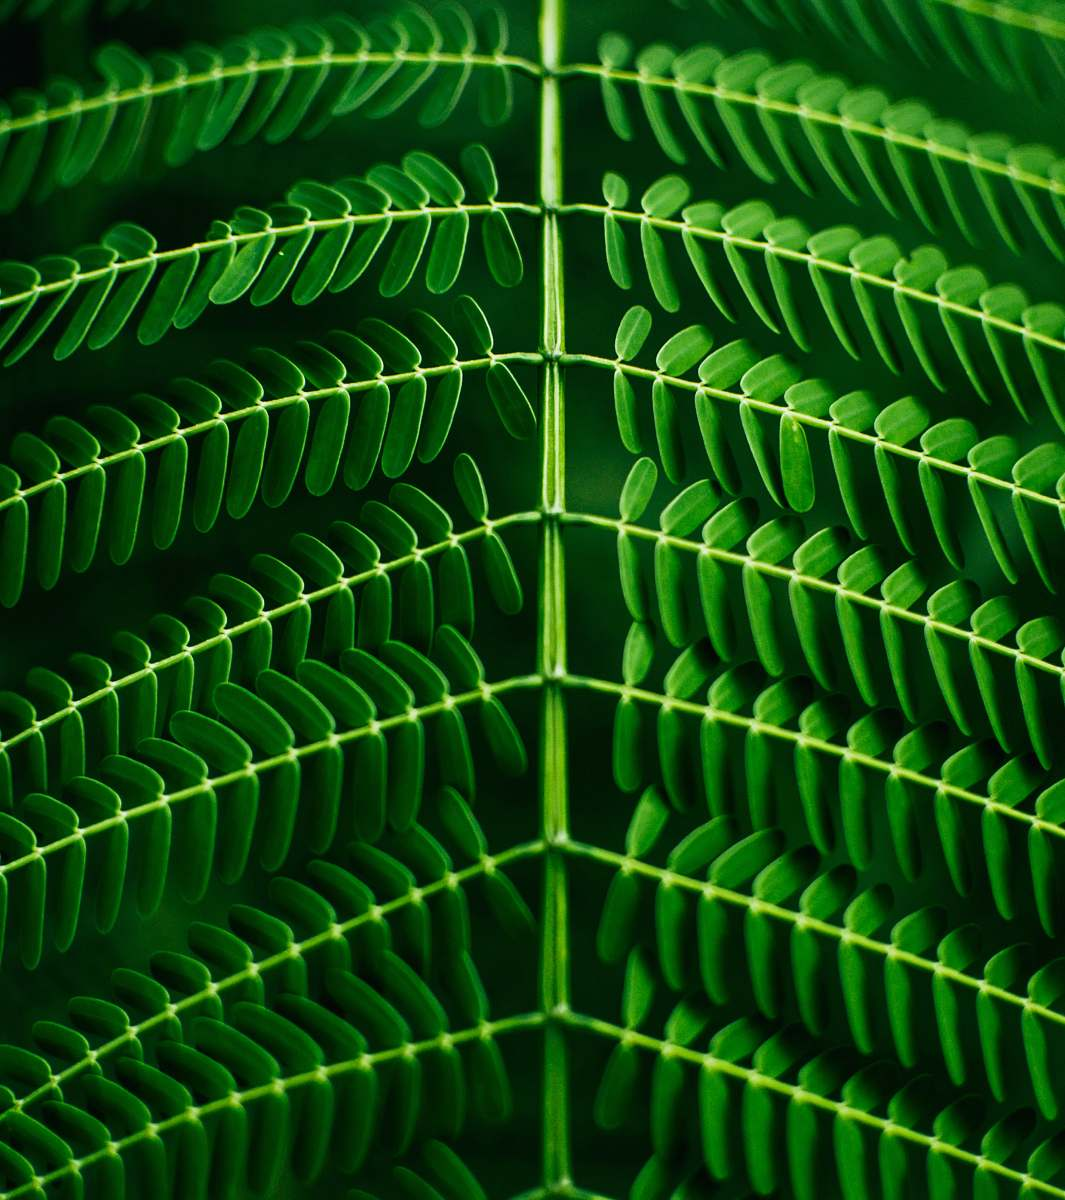 stock photos free  of green macro photography of green leafed plant plant